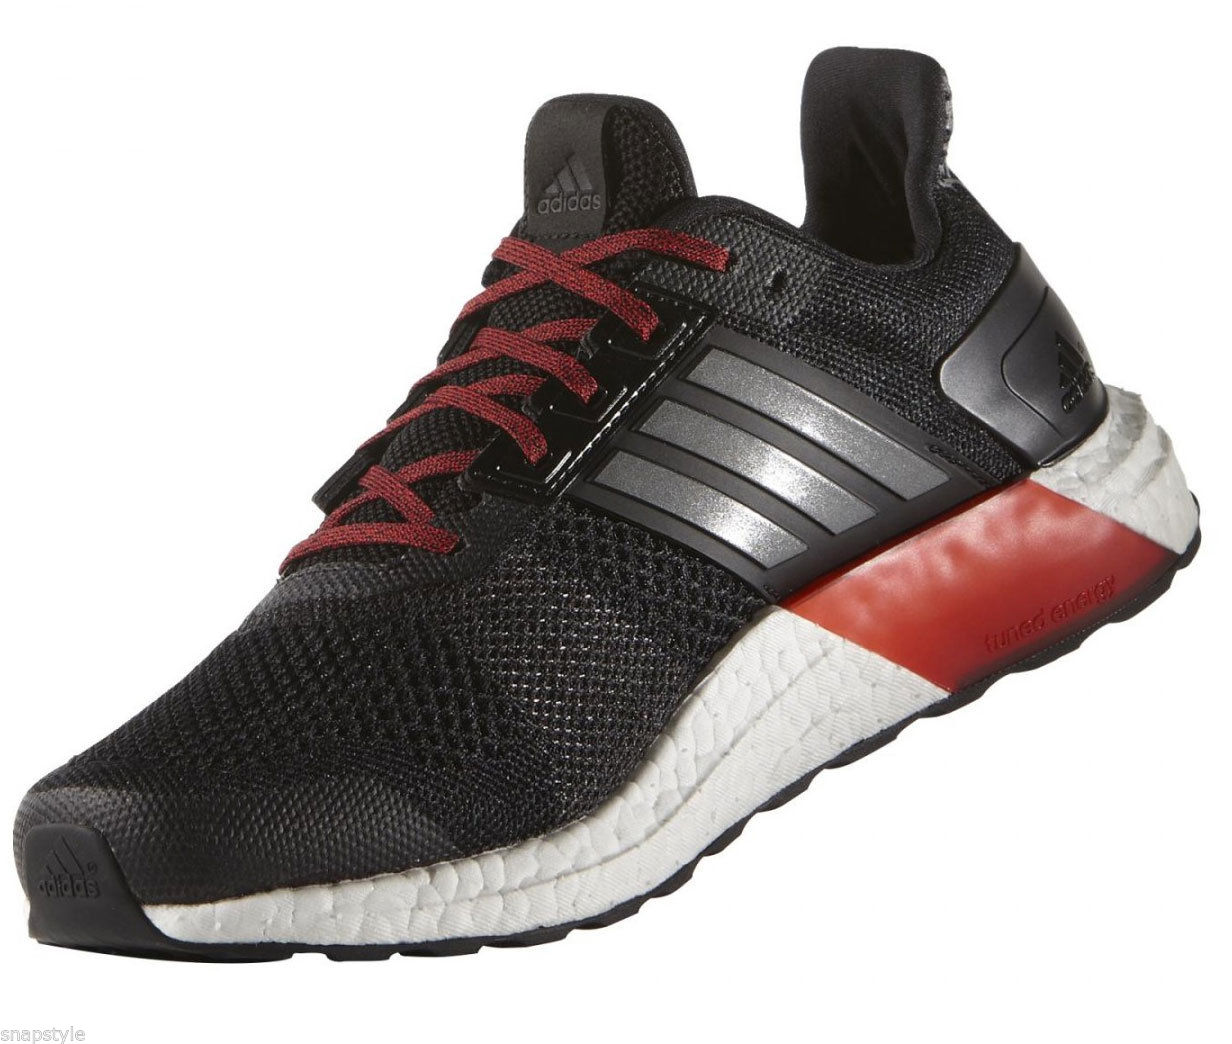 new style 47689 45f8d Extremely comfortable running shoes with the Adidas beloved Boost  Technology. The superior smooth outsole and elastic heel provides ultimate  comfort and ...